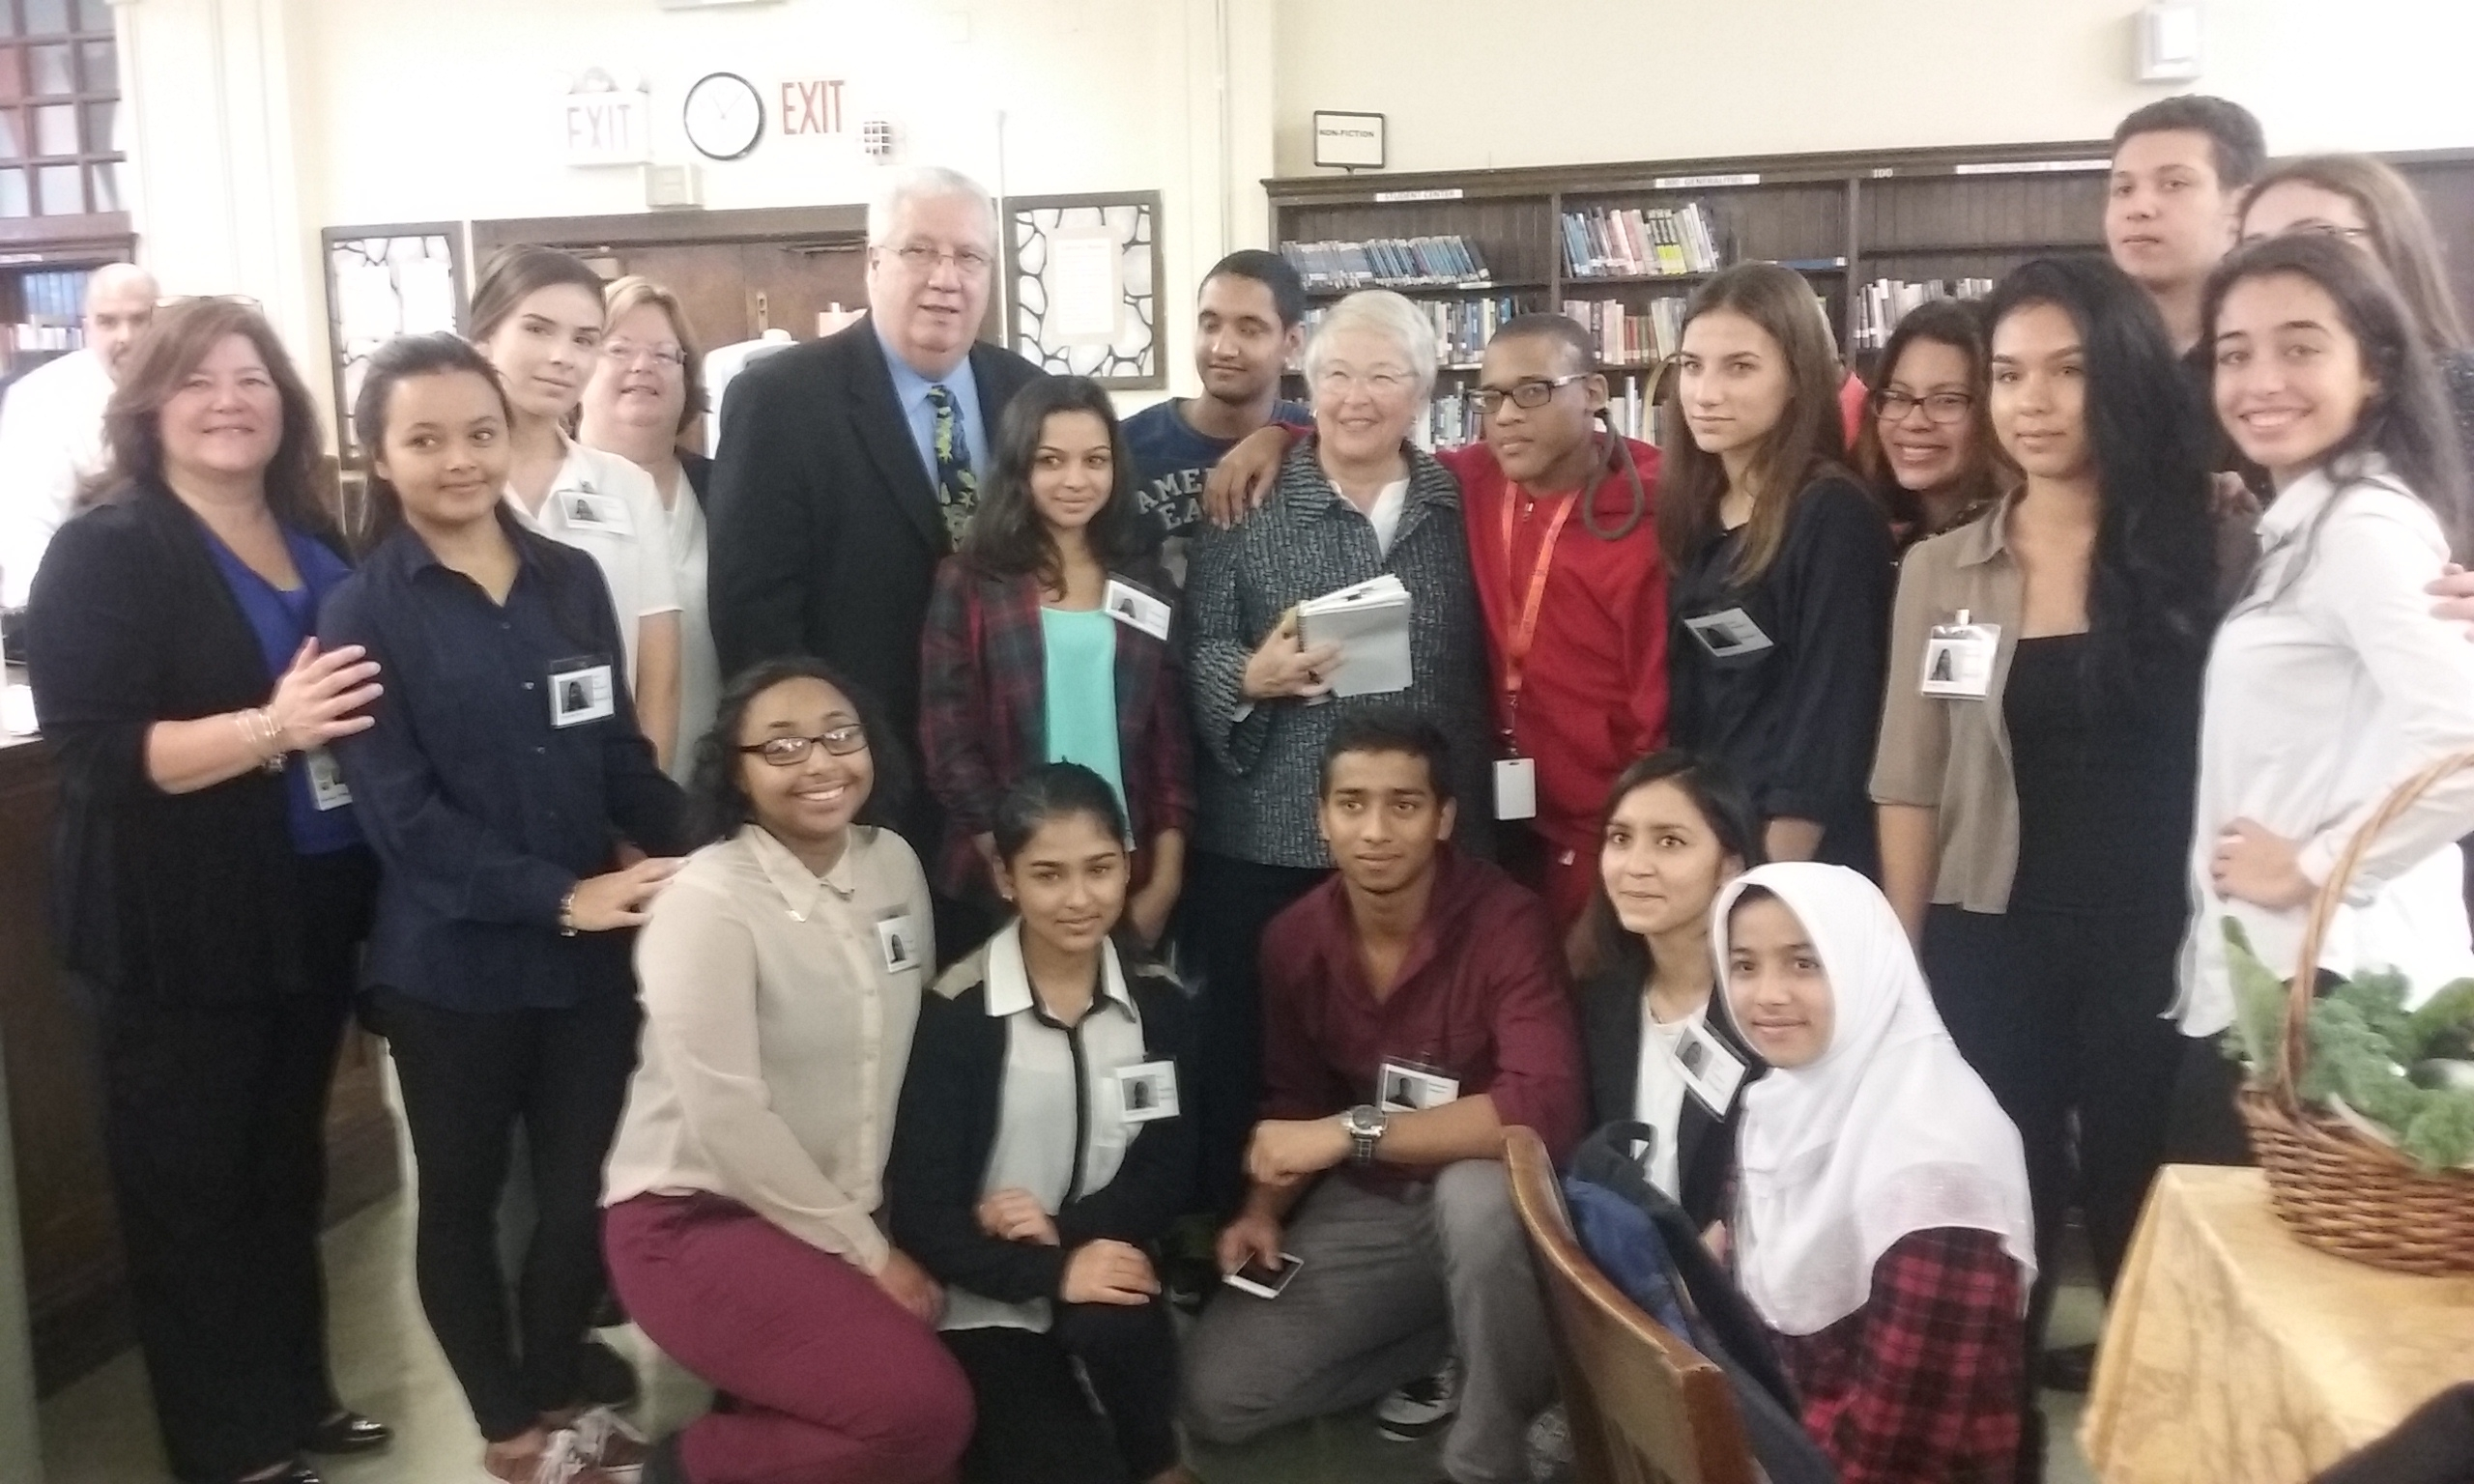 Assemblywoman Catherine Nolan joined State Senator Carl Marcellino, NYC DOE Chancellor Carmen Farina, Grover Cleveland High School Principal Denise Vittor, teachers and students on a recent school visit to Ridgewood's Grover Cleveland High School.